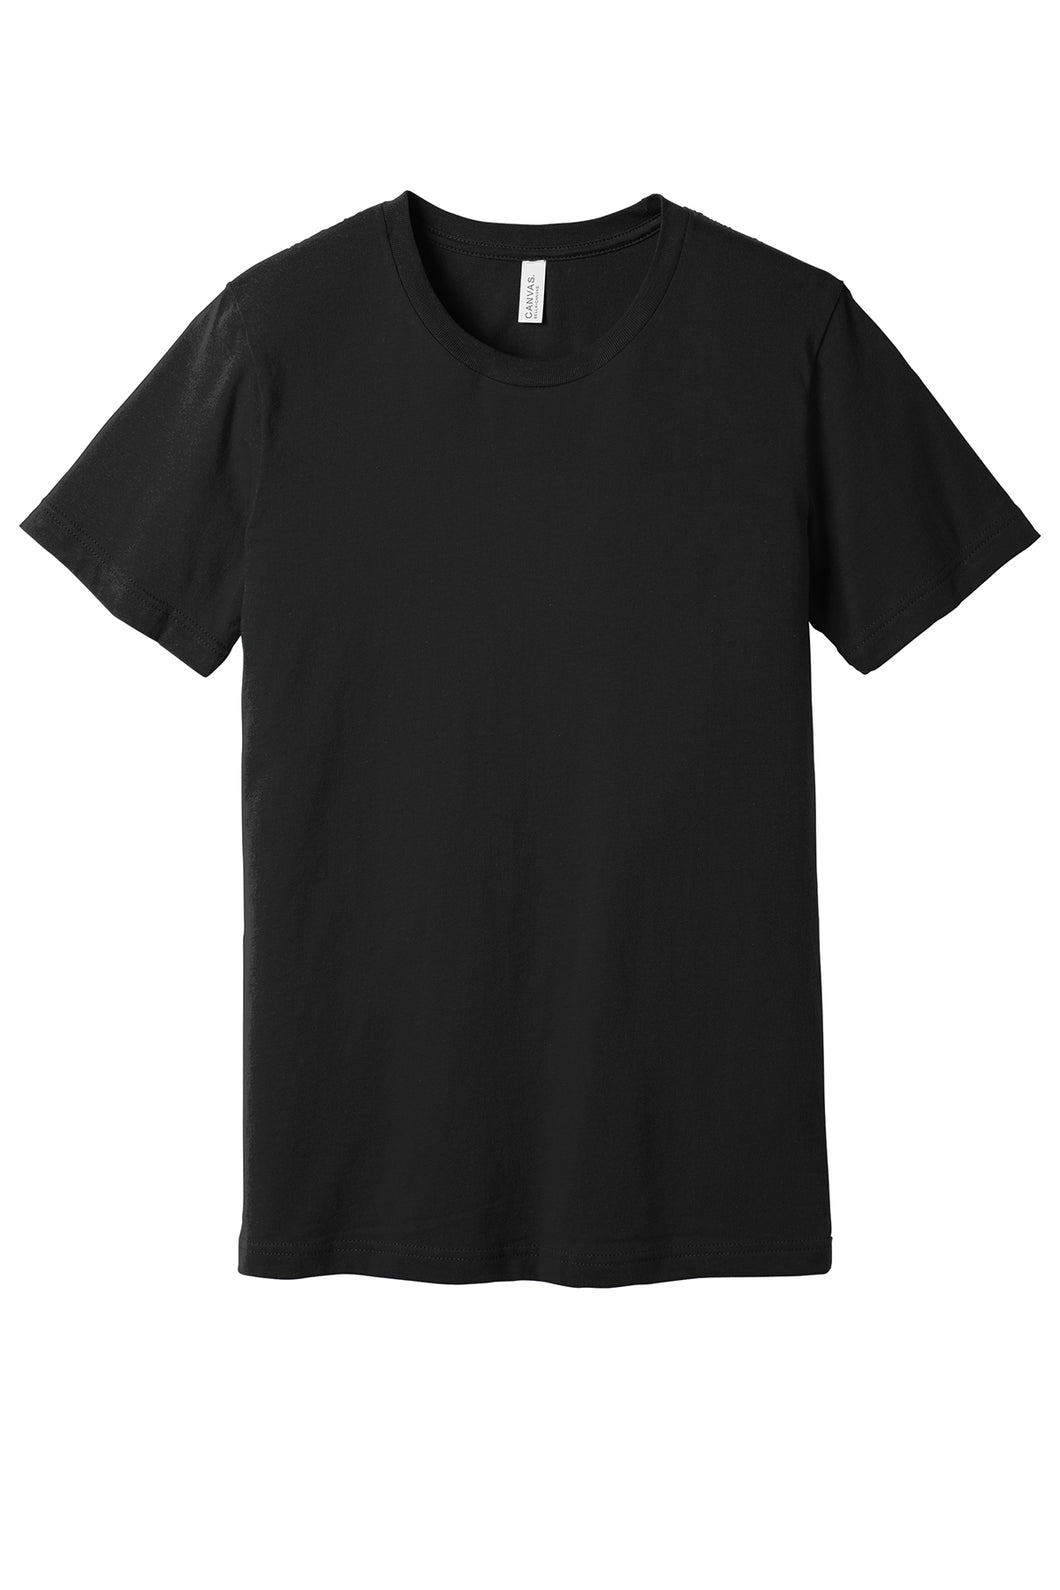 Bella Canvas Youth Short Sleeve